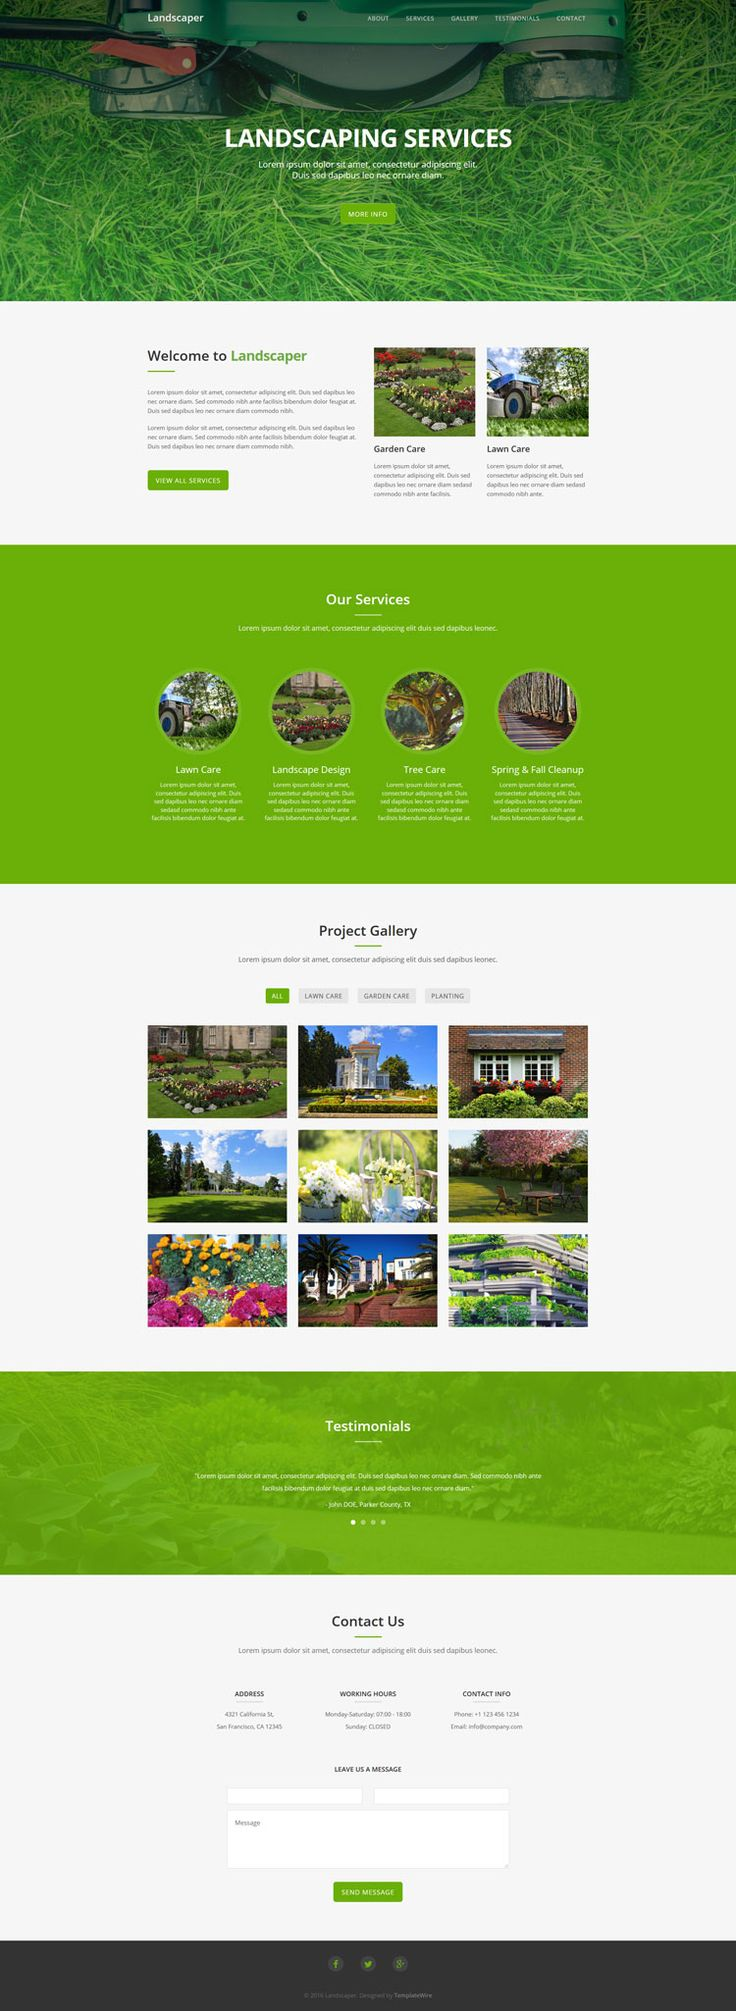 Landscaper - Free Landscaping Website Template